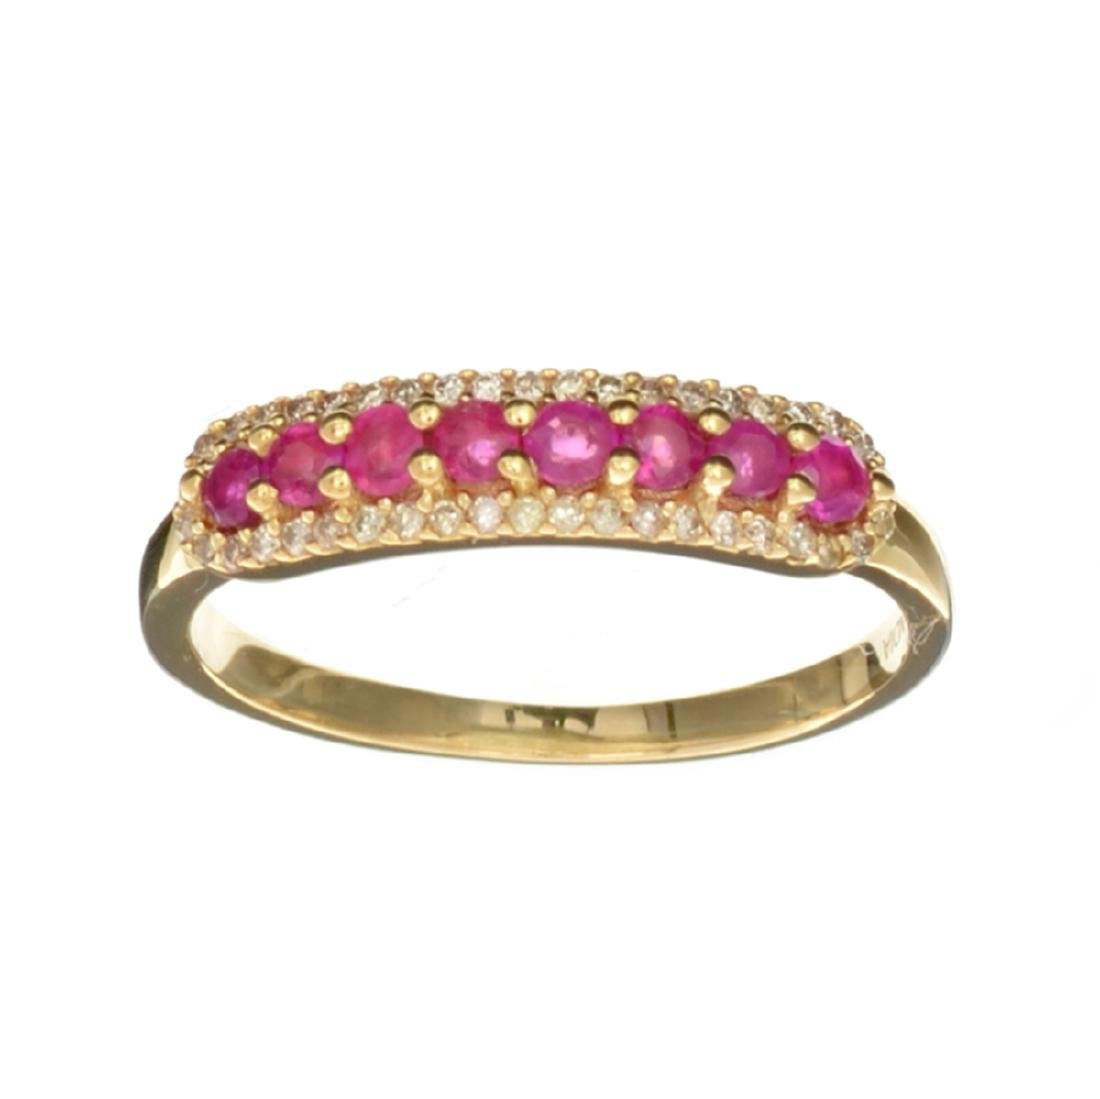 Designer Sebastian 14KT Gold, Round Cut Ruby and 0.11CT